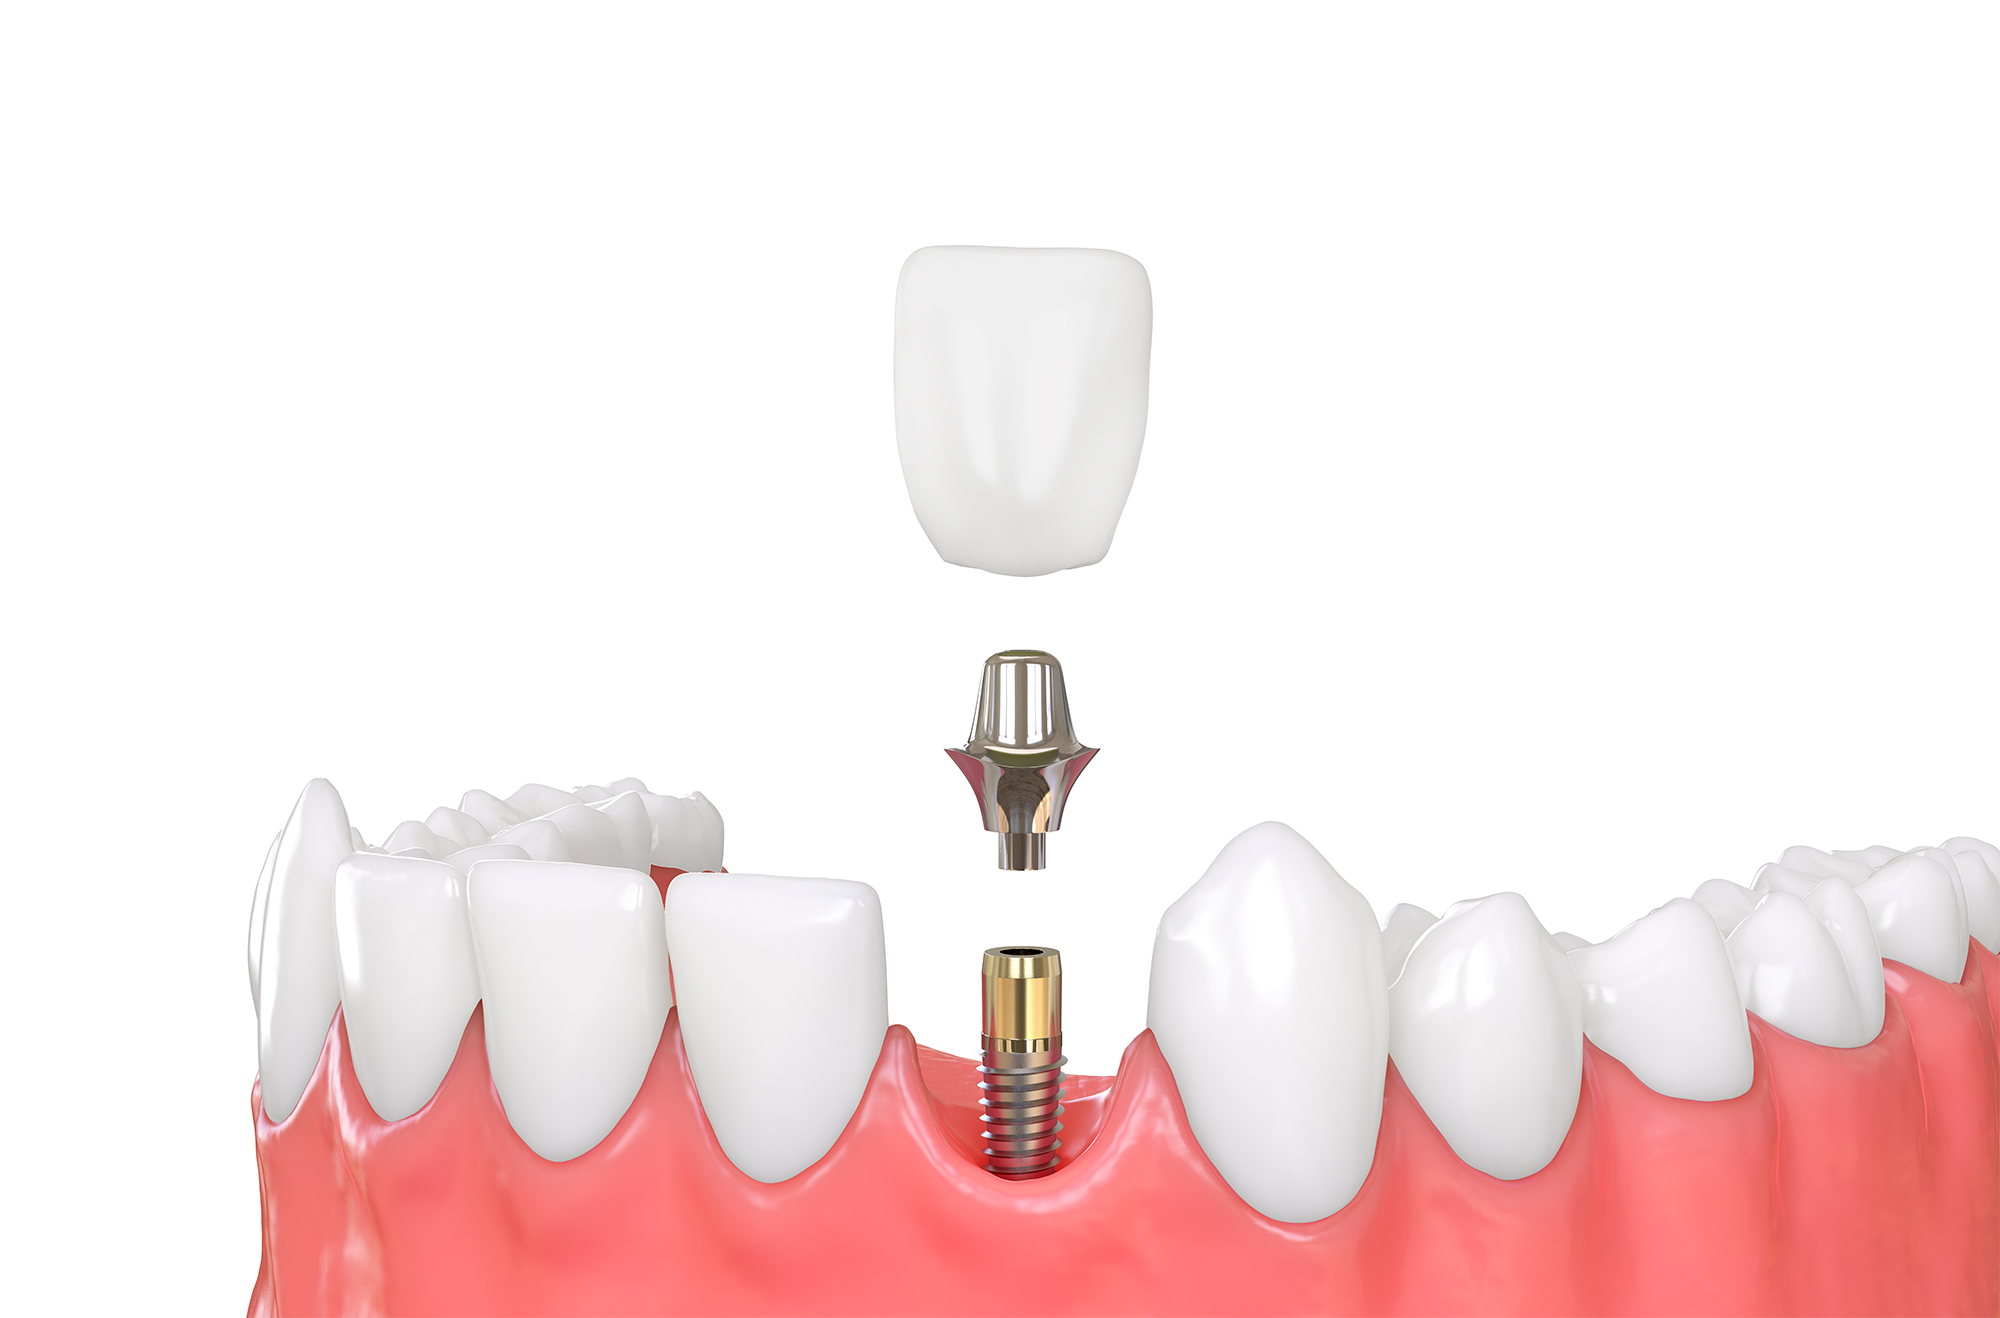 Diagram of dental Implants by dentist in Allentown, PA.